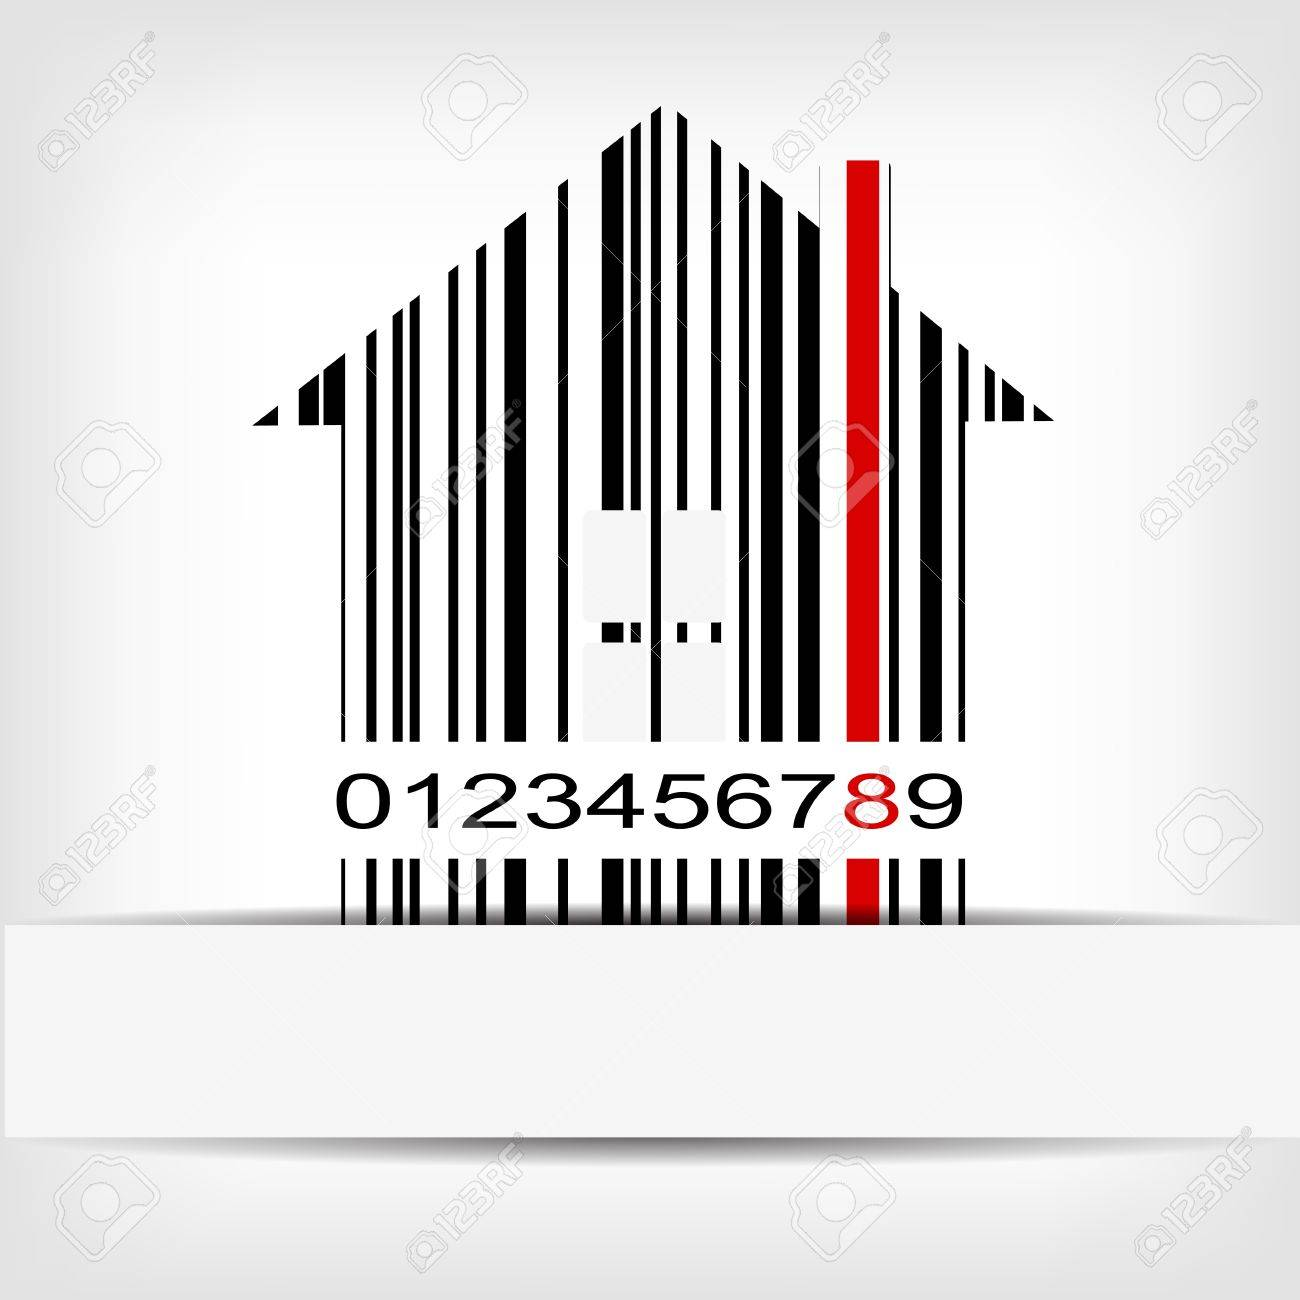 Barcode image with red strip - vector illustration Stock Vector - 15727212